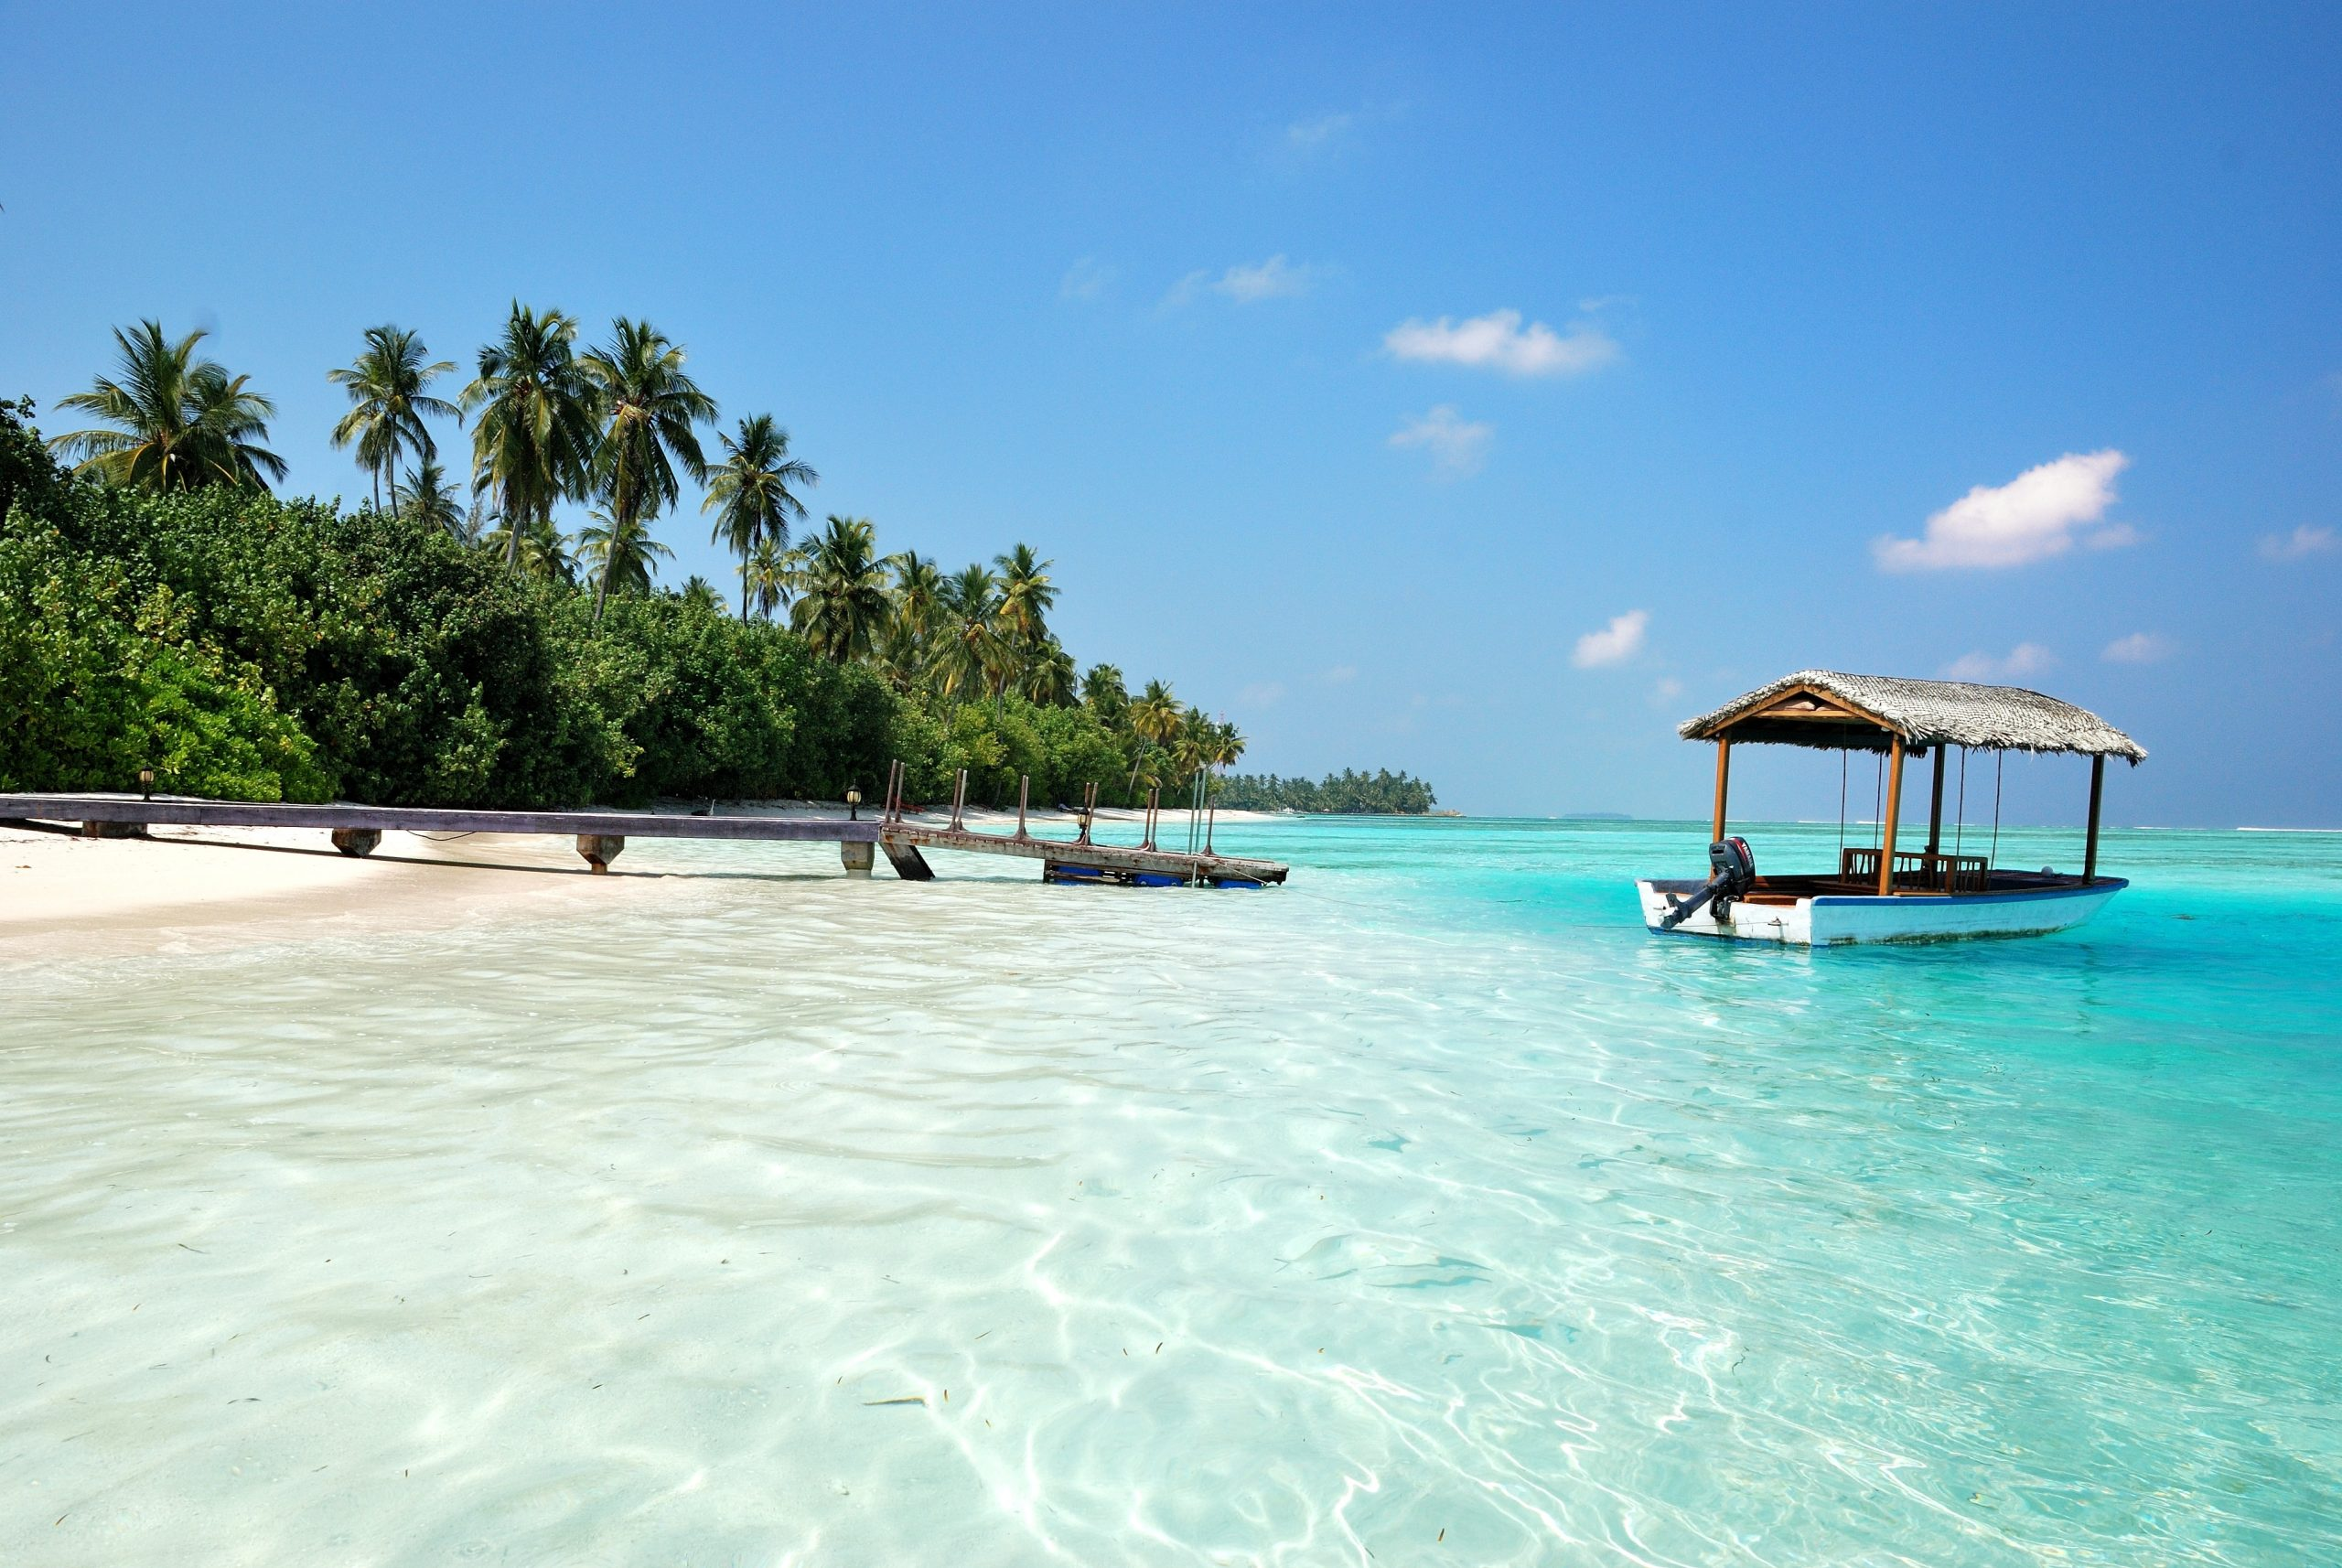 Maldives weather in January